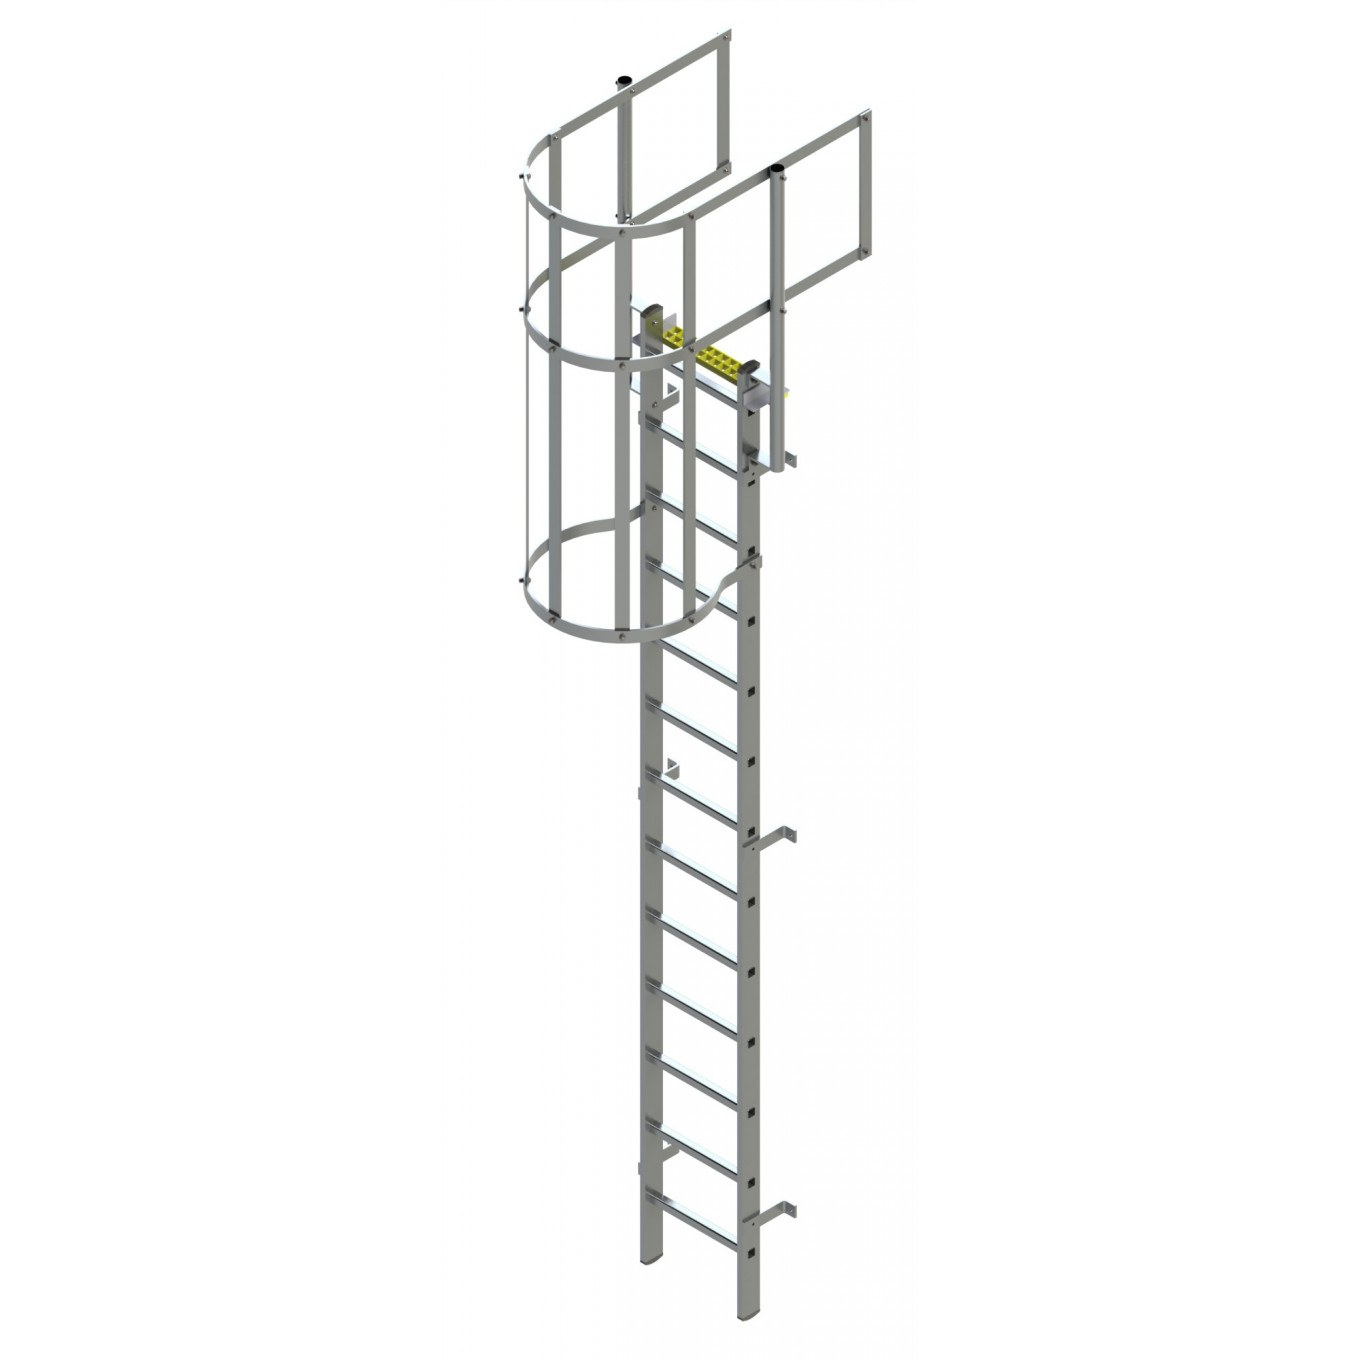 Fixed Vertical Ladder With Safety Cage Walkthrough